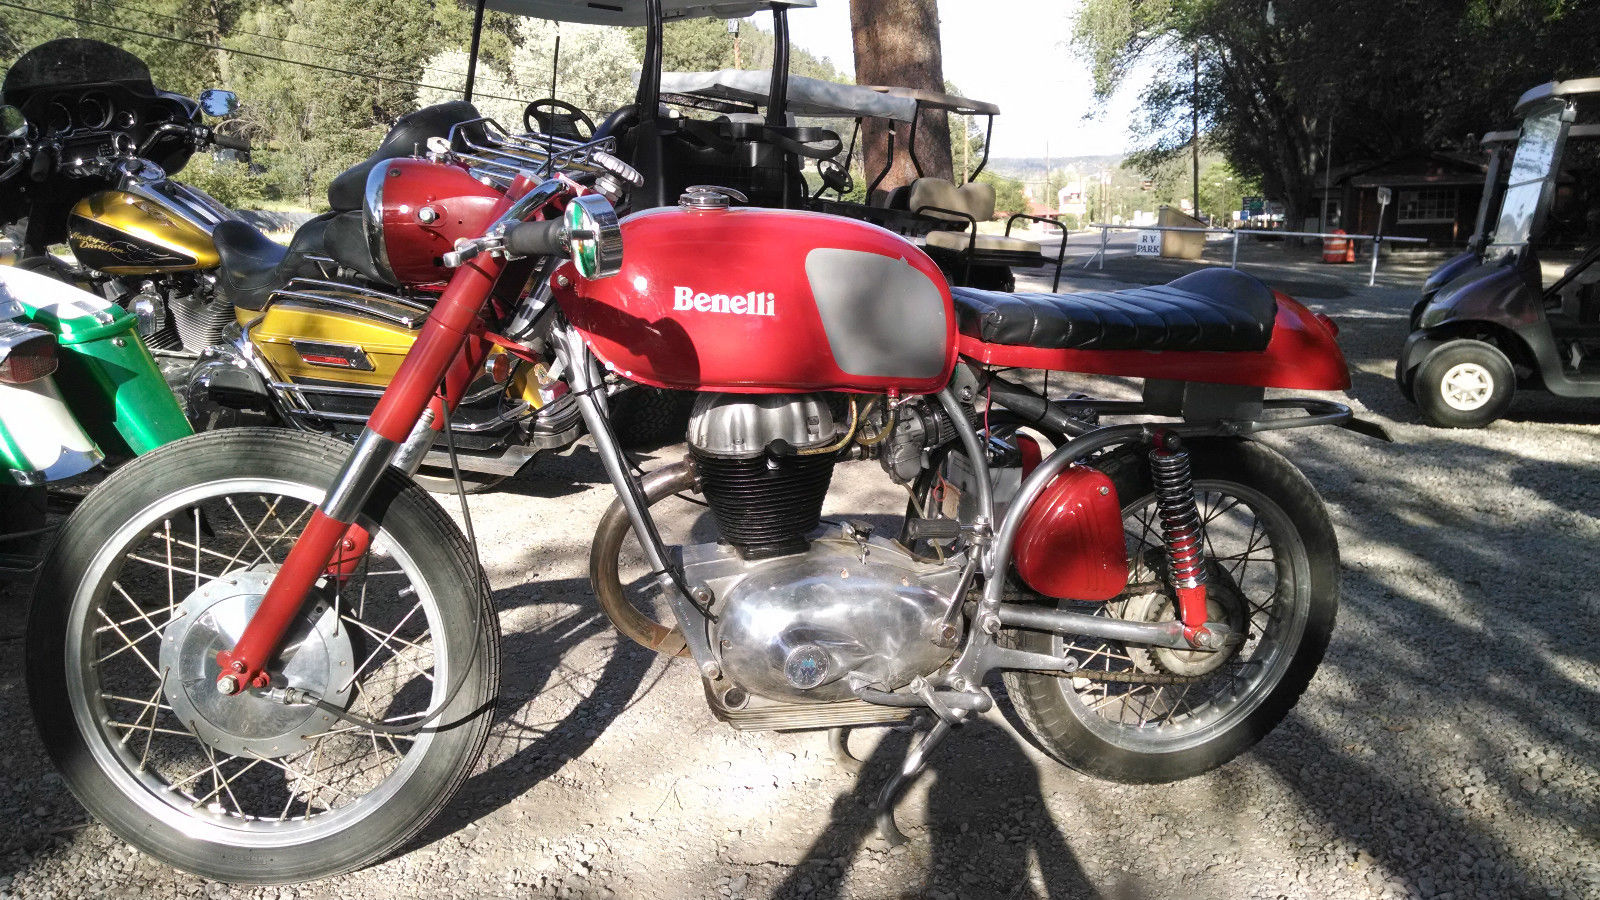 1964 BENELLI WARDS RIVERSIDE 250 CAFE RACER